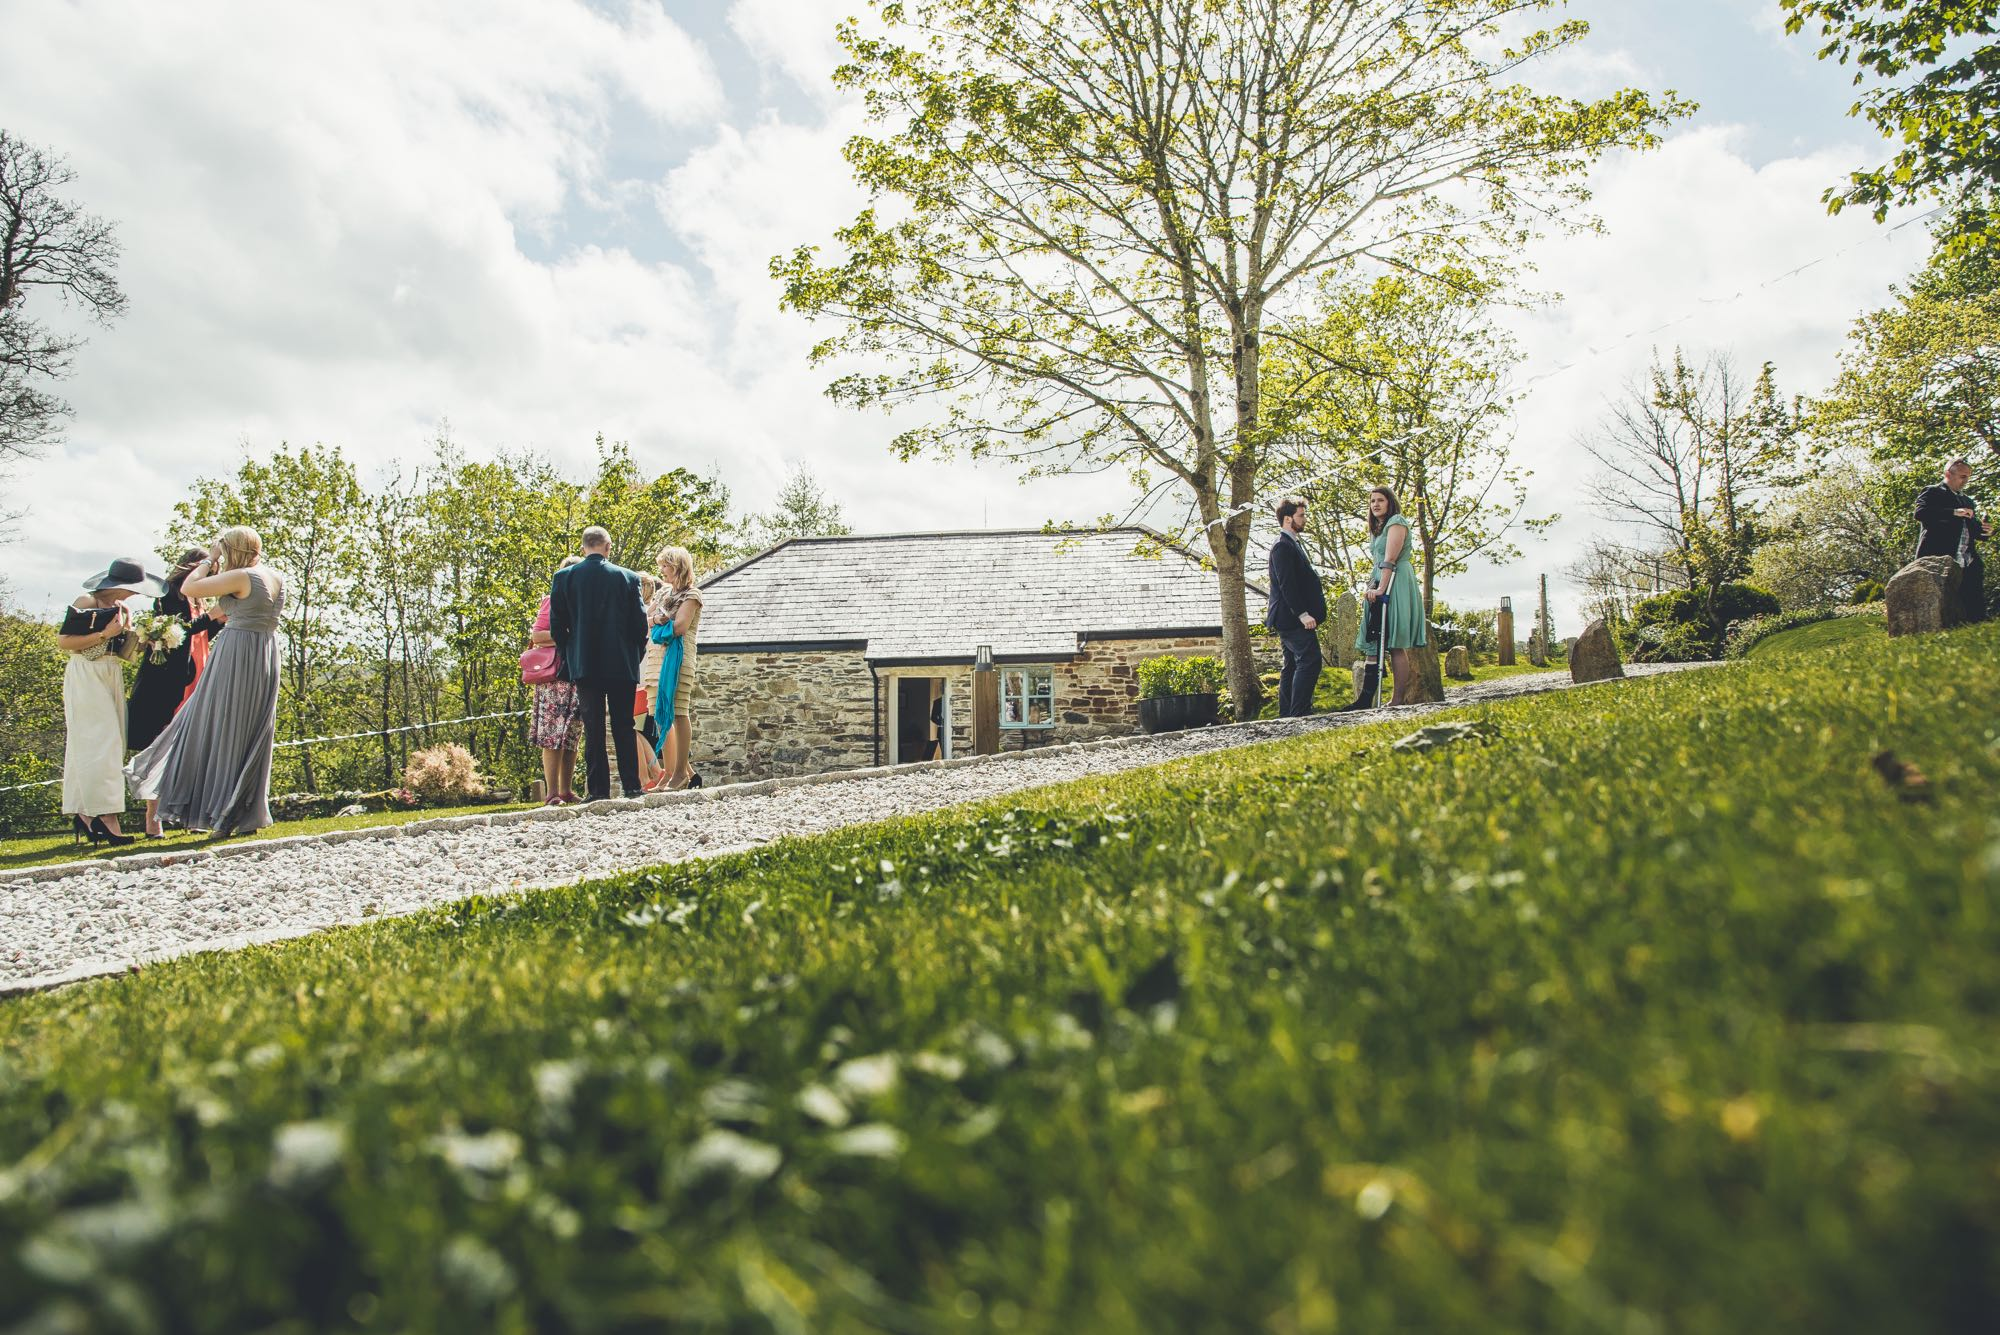 This is an image of some guests relaxing in the grounds. In the middle of the picture you can see cottage number two which is a sleeps two cottage. This cottage is detached and is made of local granite stone which is gray and brown. It has a gray slate roof. There is a door in the middle of the cottage and the door is open. There is a casement window to the right hand side of the door. In the foreground of the picture there is grass and diagonally across the picture there is a gravel pathway sloping upwards. The sky is blue but cloudy. It is a spring day and the trees are partially in leaf. There are trees to the left and to the right of the cottage. On the left of the picture at a distance of about 20 meters from the camera are 3 guests standing in a group. In the middle of the picture, also about 20 meters from the camera, is another group of 4 guests. Towards the right of the picture also at about 20 meters from the camera is another group of 3 guests.